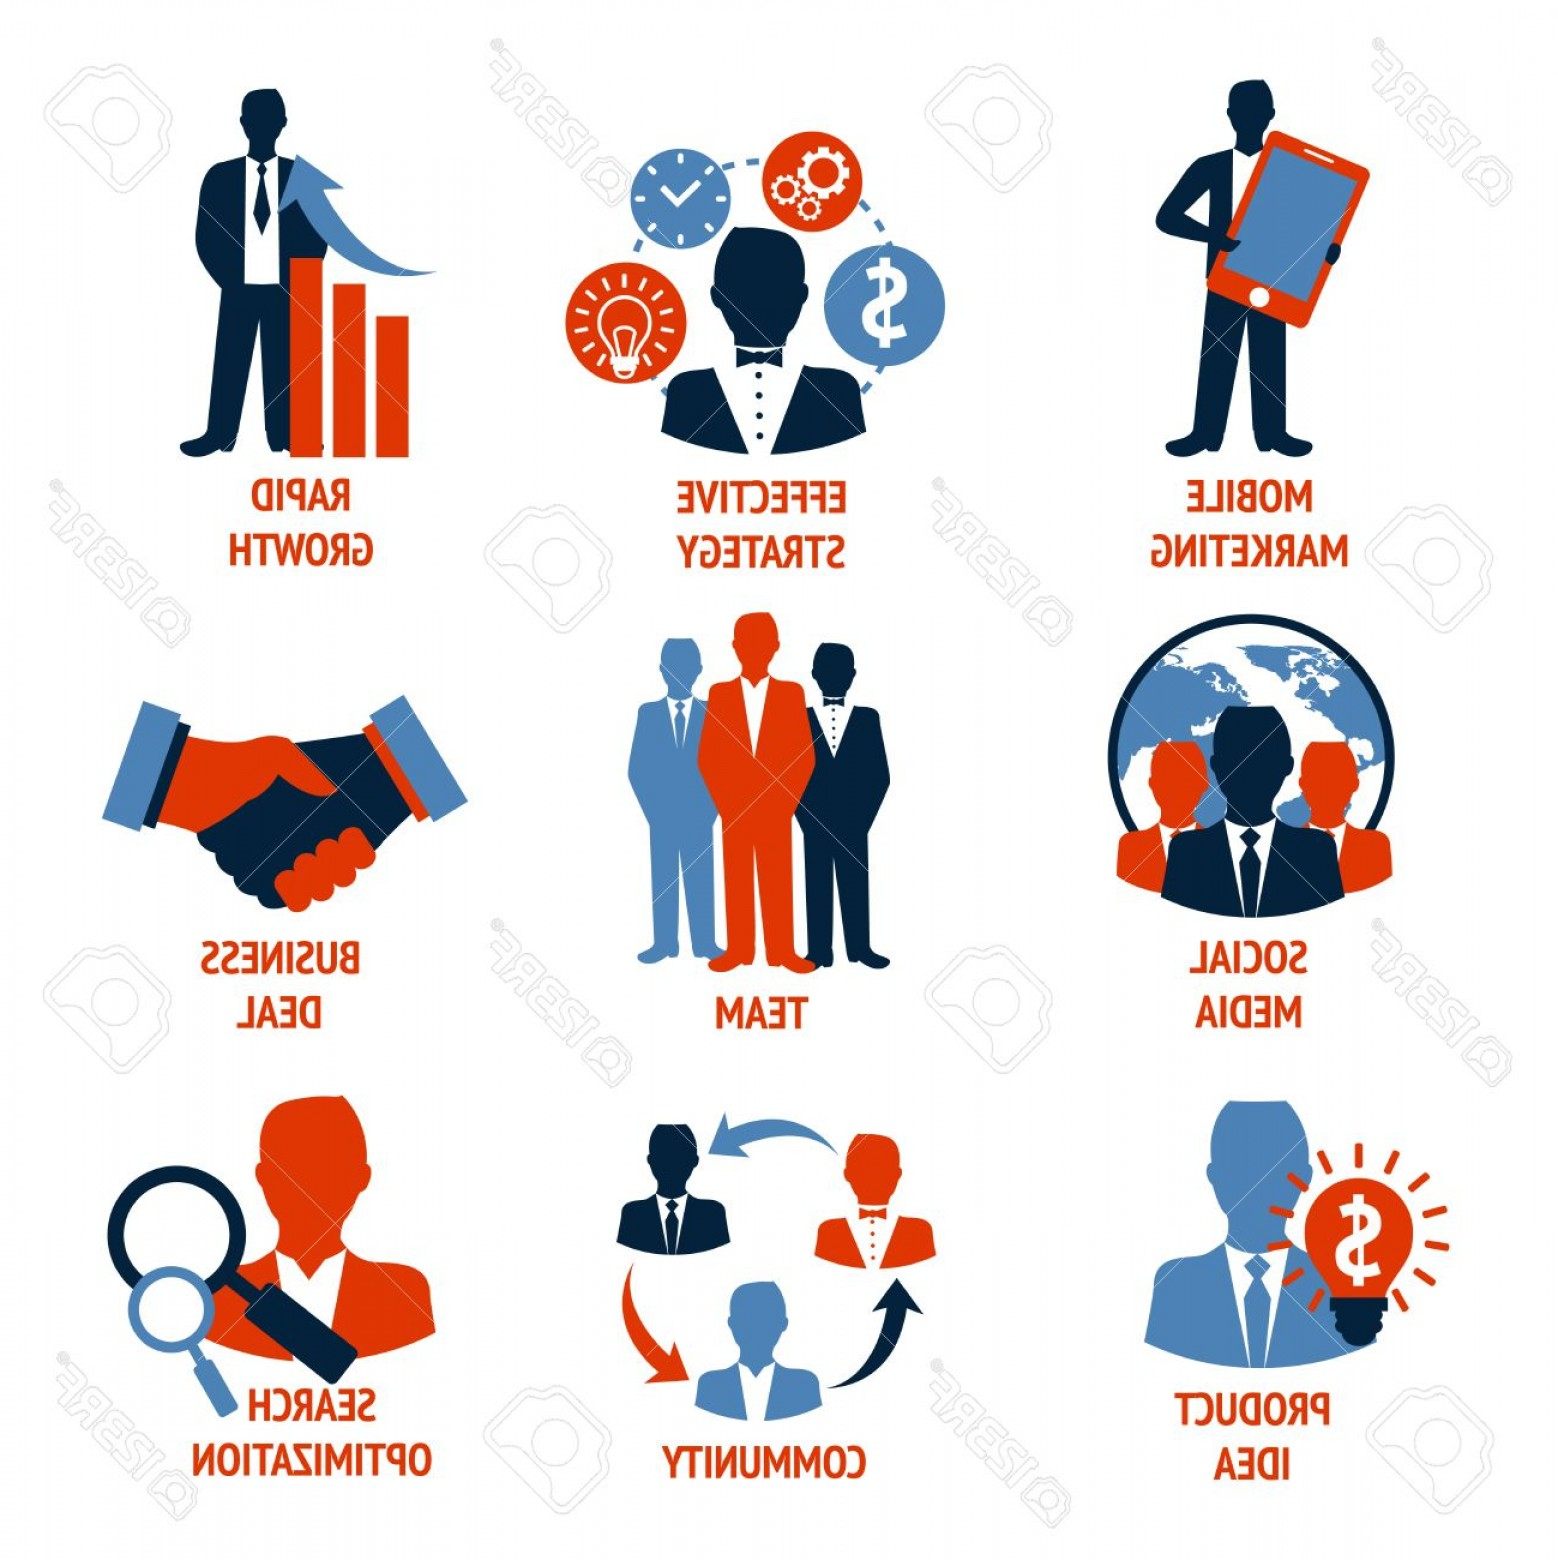 Growth Vector People: Photostock Vector Business People Meeting Managements Icons Set Of Mobile Marketing Effective Strategy Rapid Growth Is